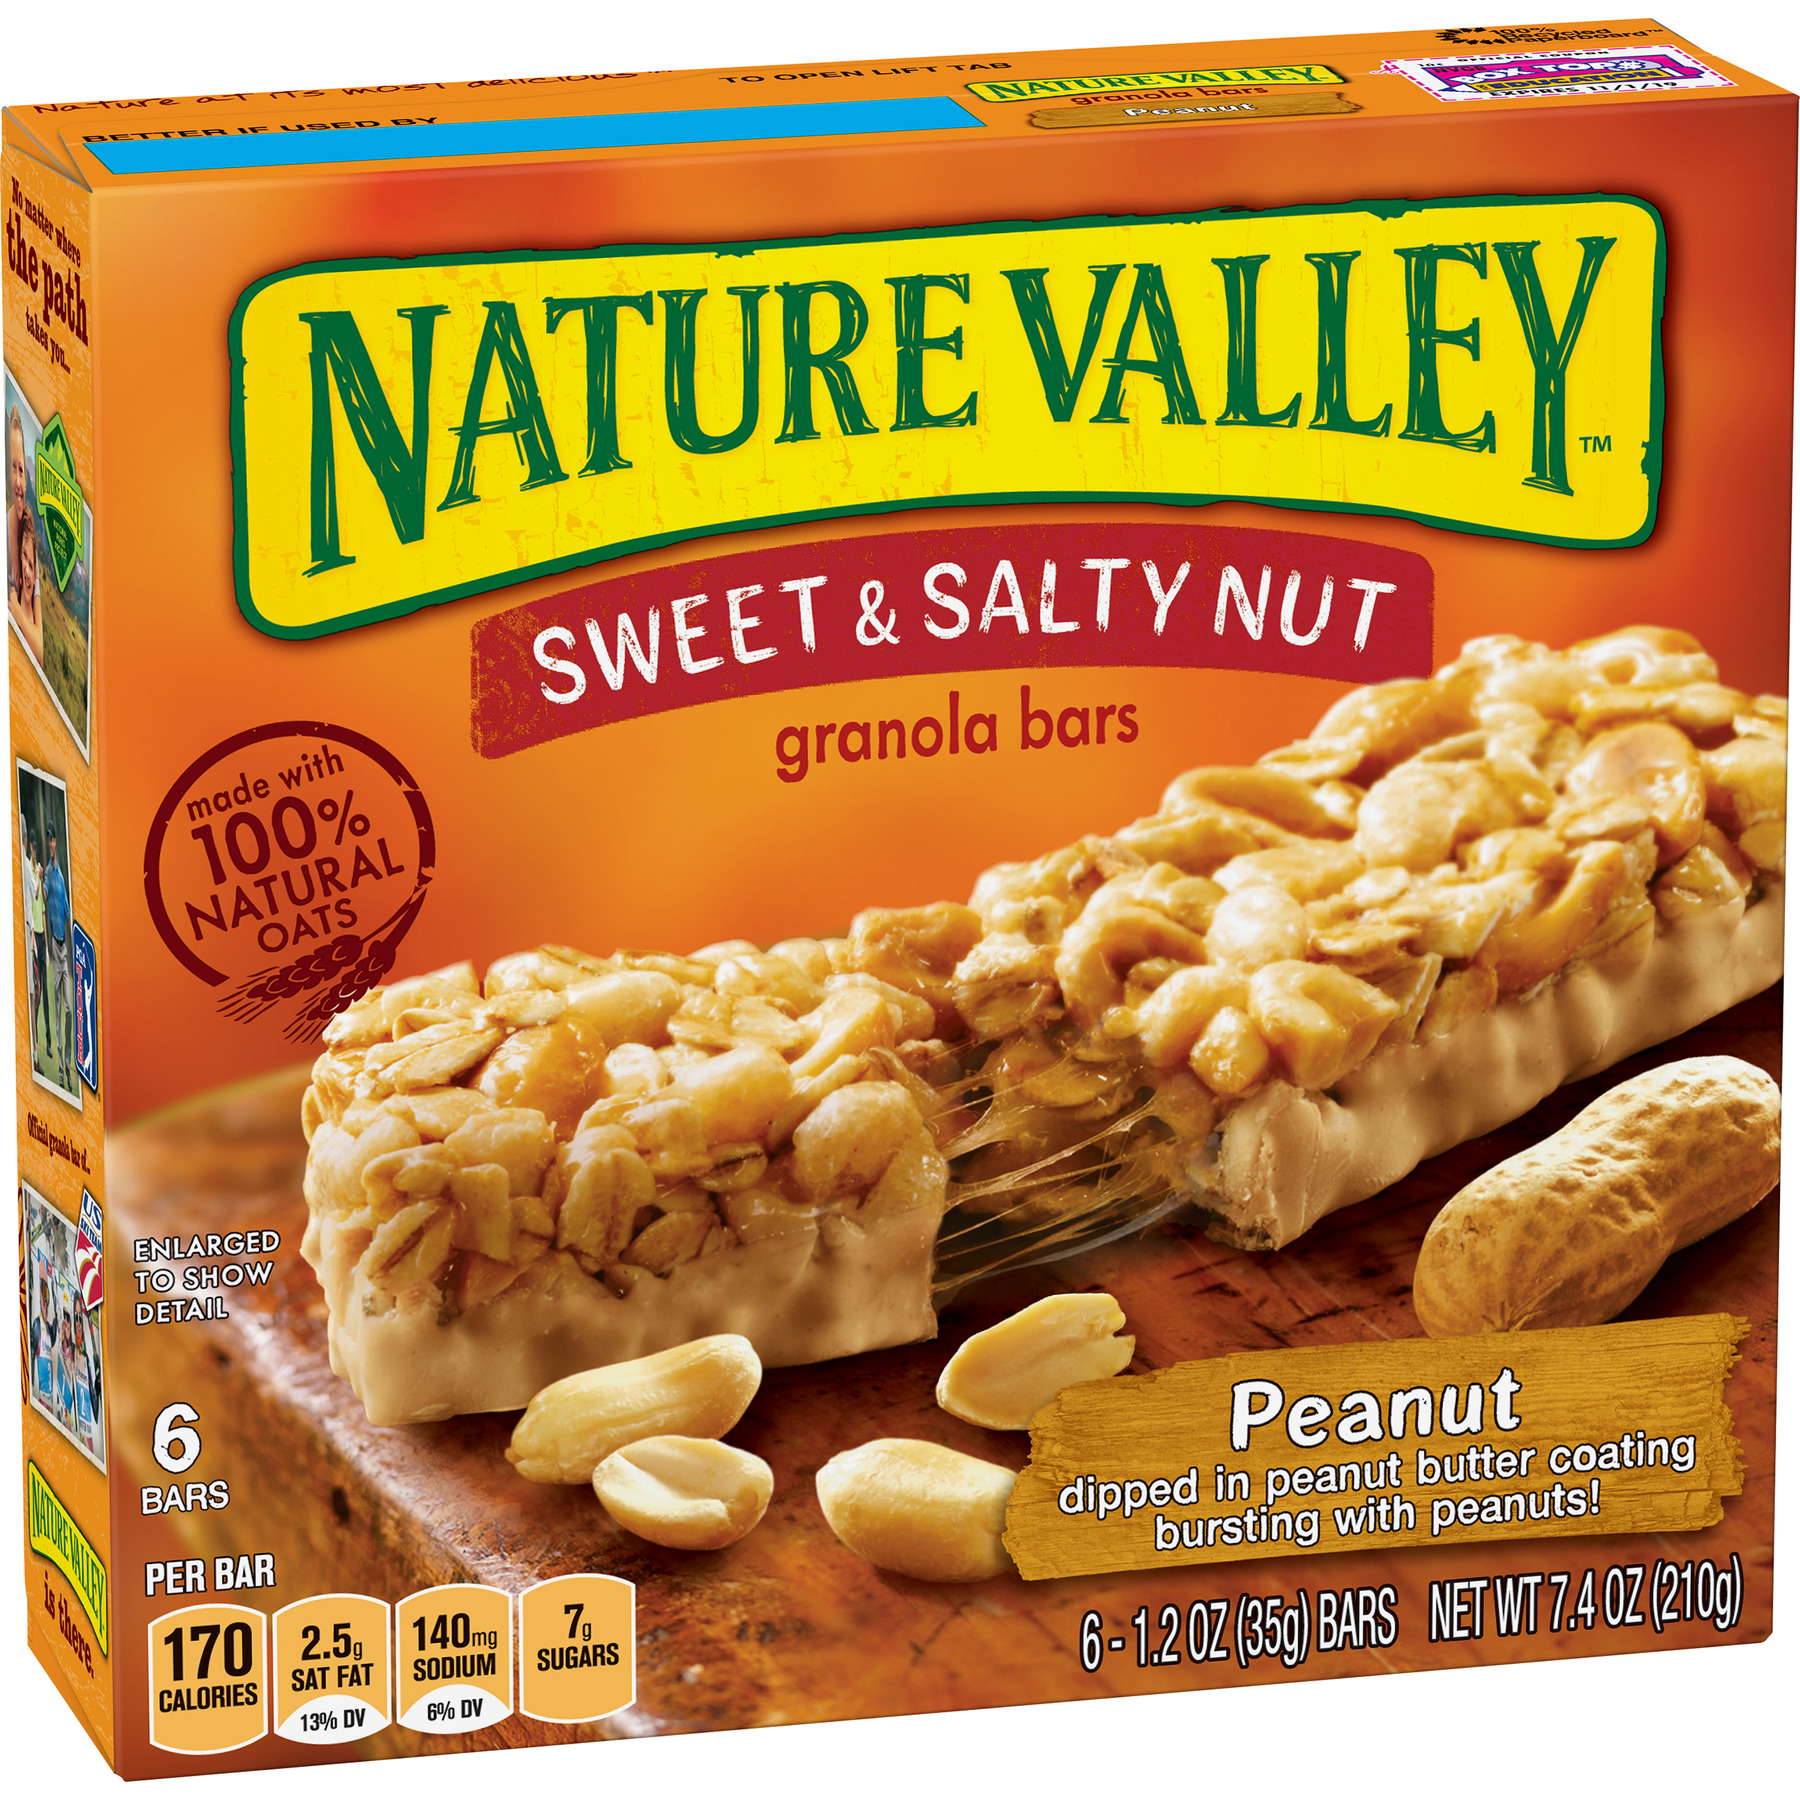 Nature Valley Granola Bars Sweet and Salty Nut Peanut 6 Bars - 1.2 oz